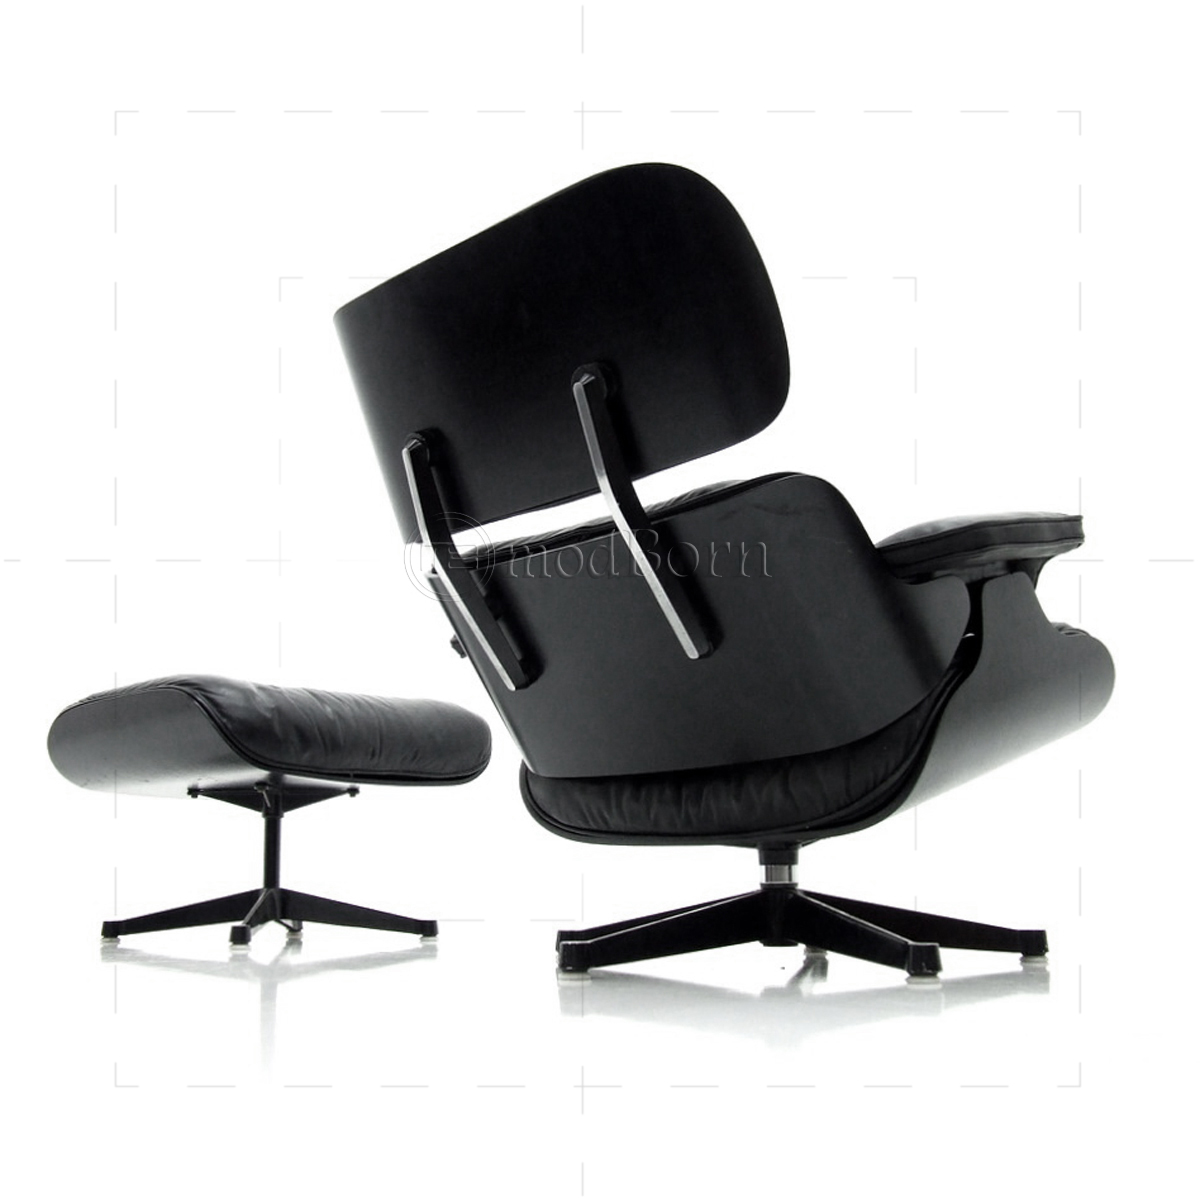 Eames Lounge Stoel Replica.Eames Style Lounge Chair And Ottoman Black Leather Black Wood Replica